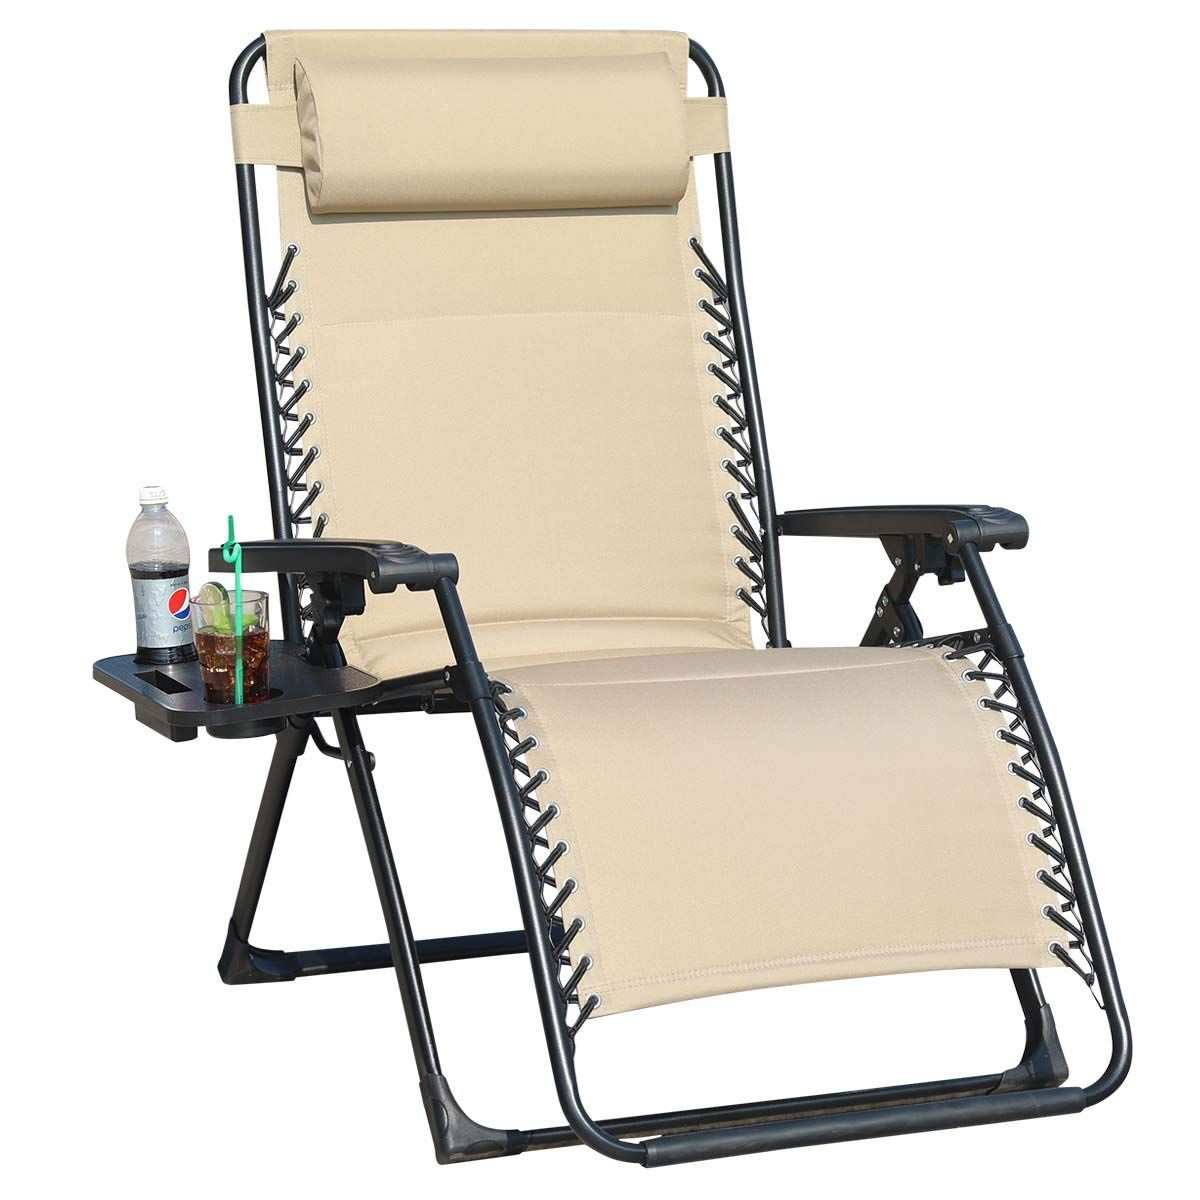 Goldsun Oversize Padded Zero Gravity Patio Lounge Chair Adjustable Recliner With Side Table Support 350lbsbeige Patio Lounge Patio Lounge Chairs Patio Chairs